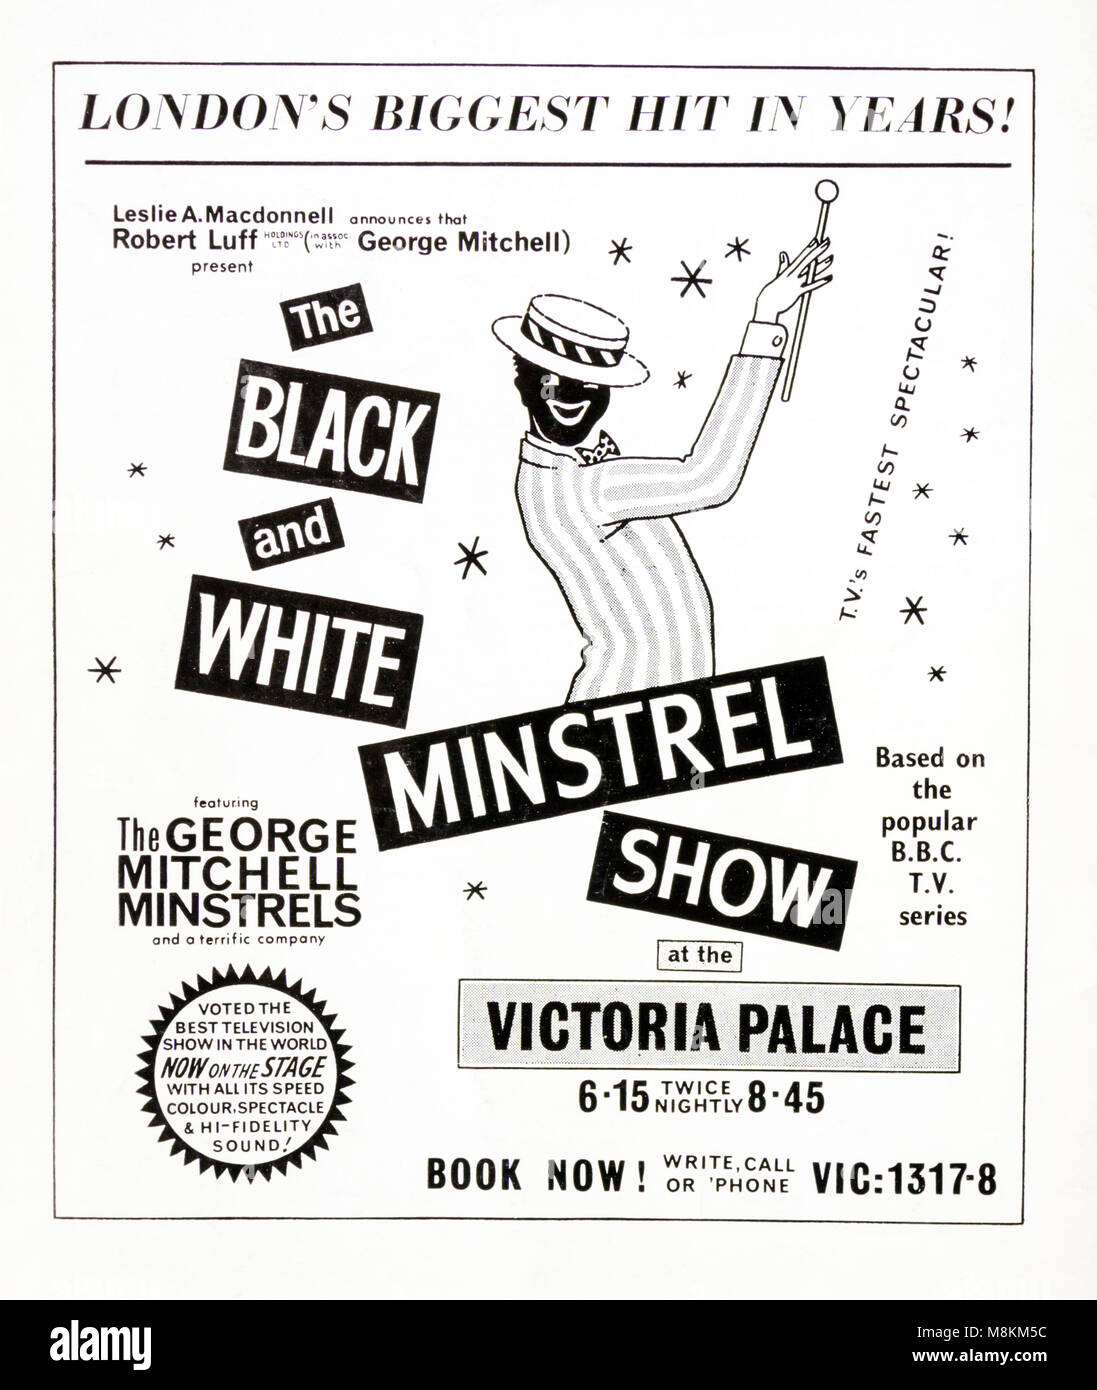 1960s advertisement advertising the Black & White Minstrel Show at the Victoria Palace. - Stock Image